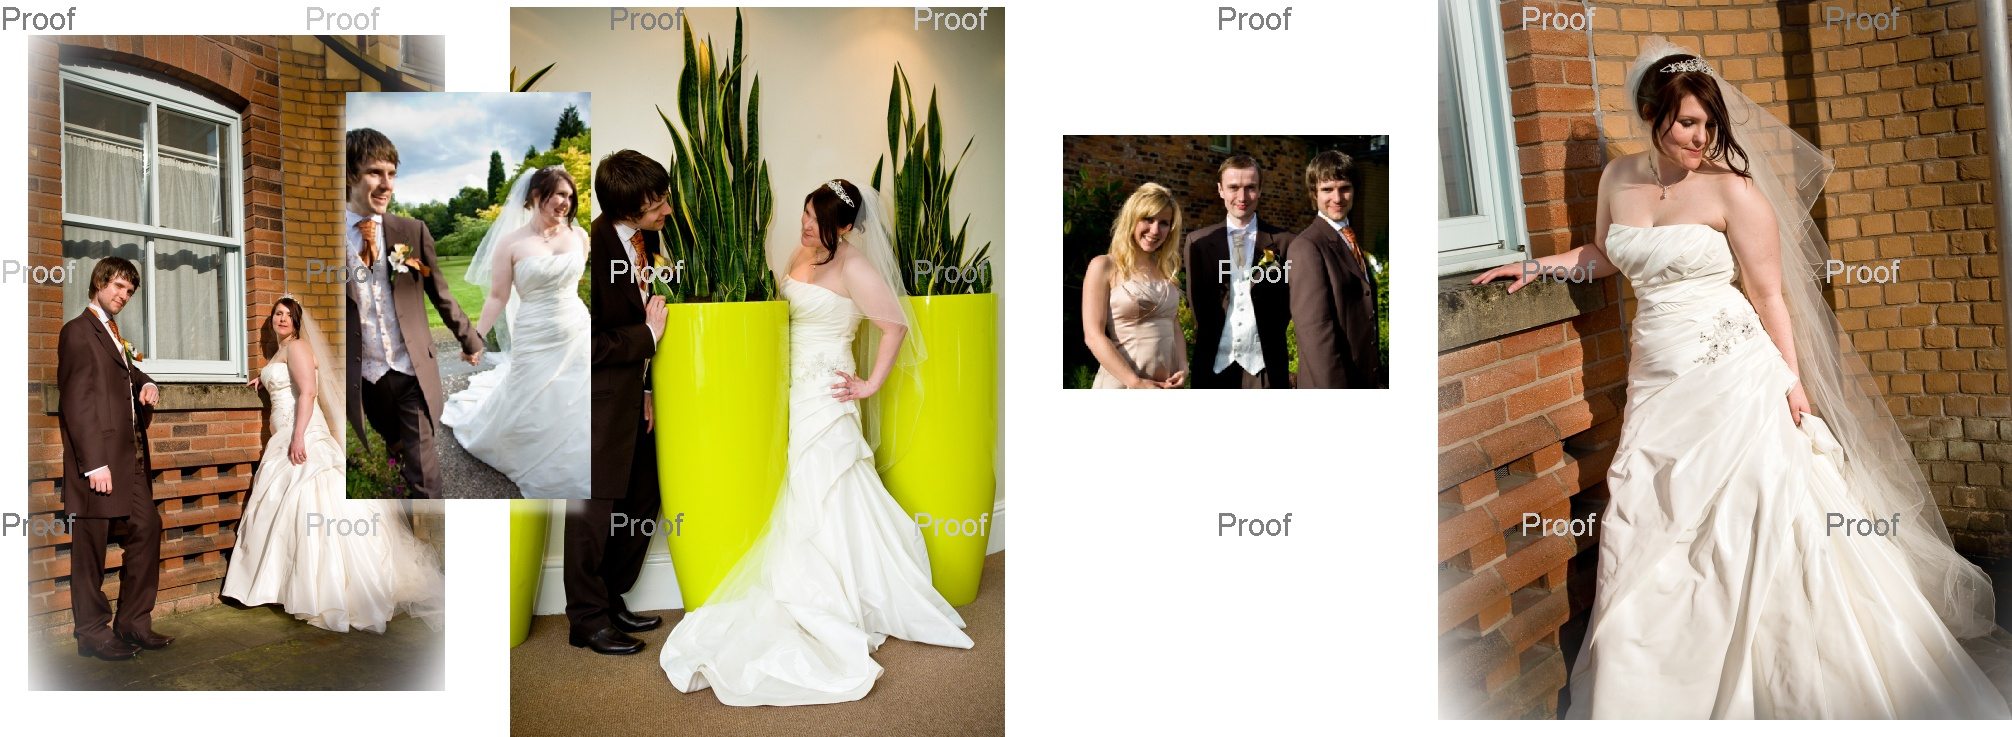 pages 62-63 wedding storybook album Louise and Martin's wedding pictures Manchester